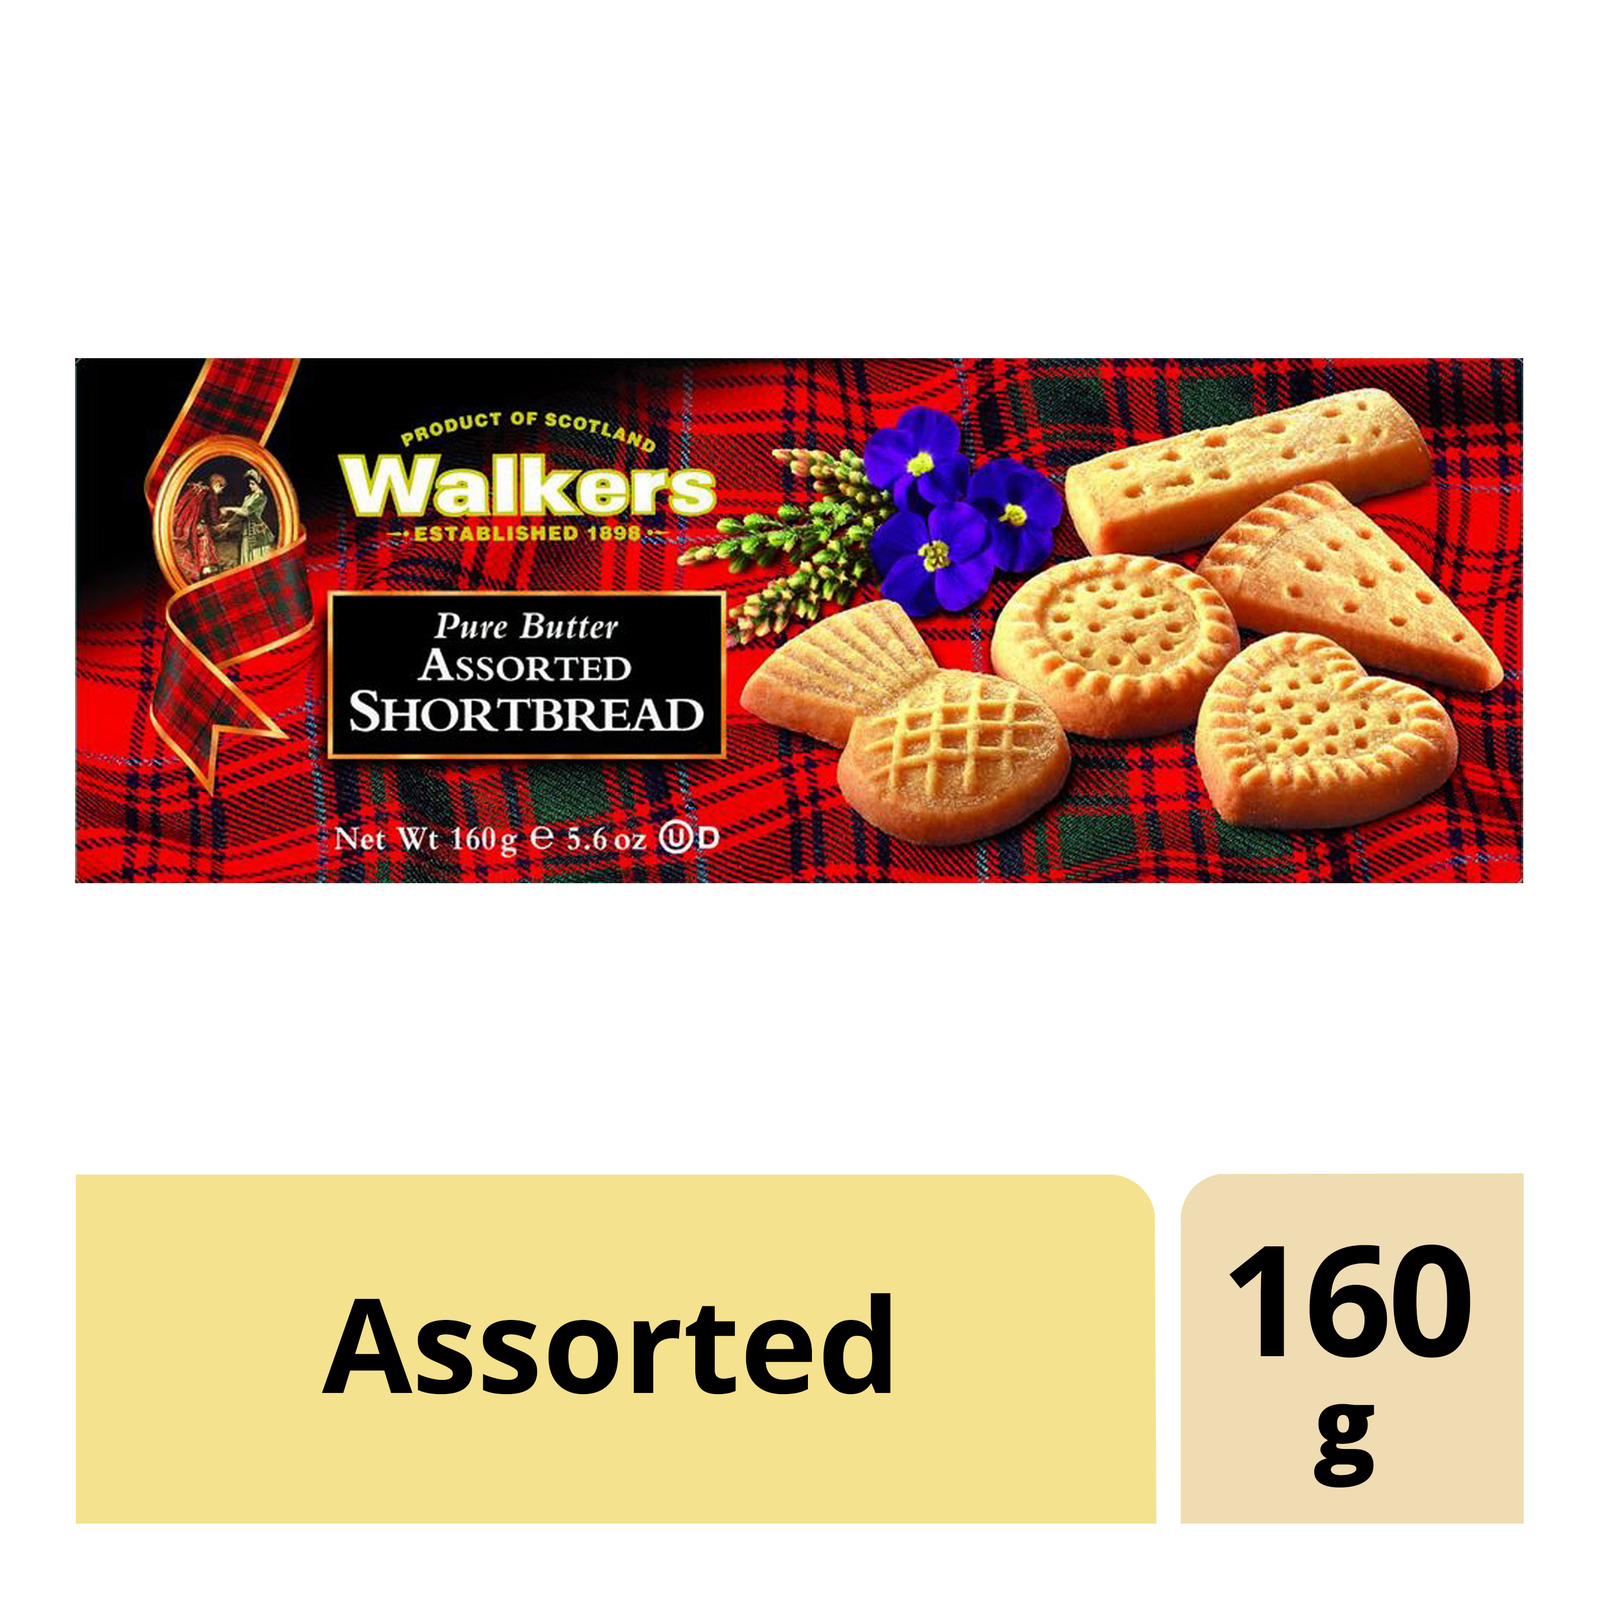 Walkers Shortbread Cookies - Assorted